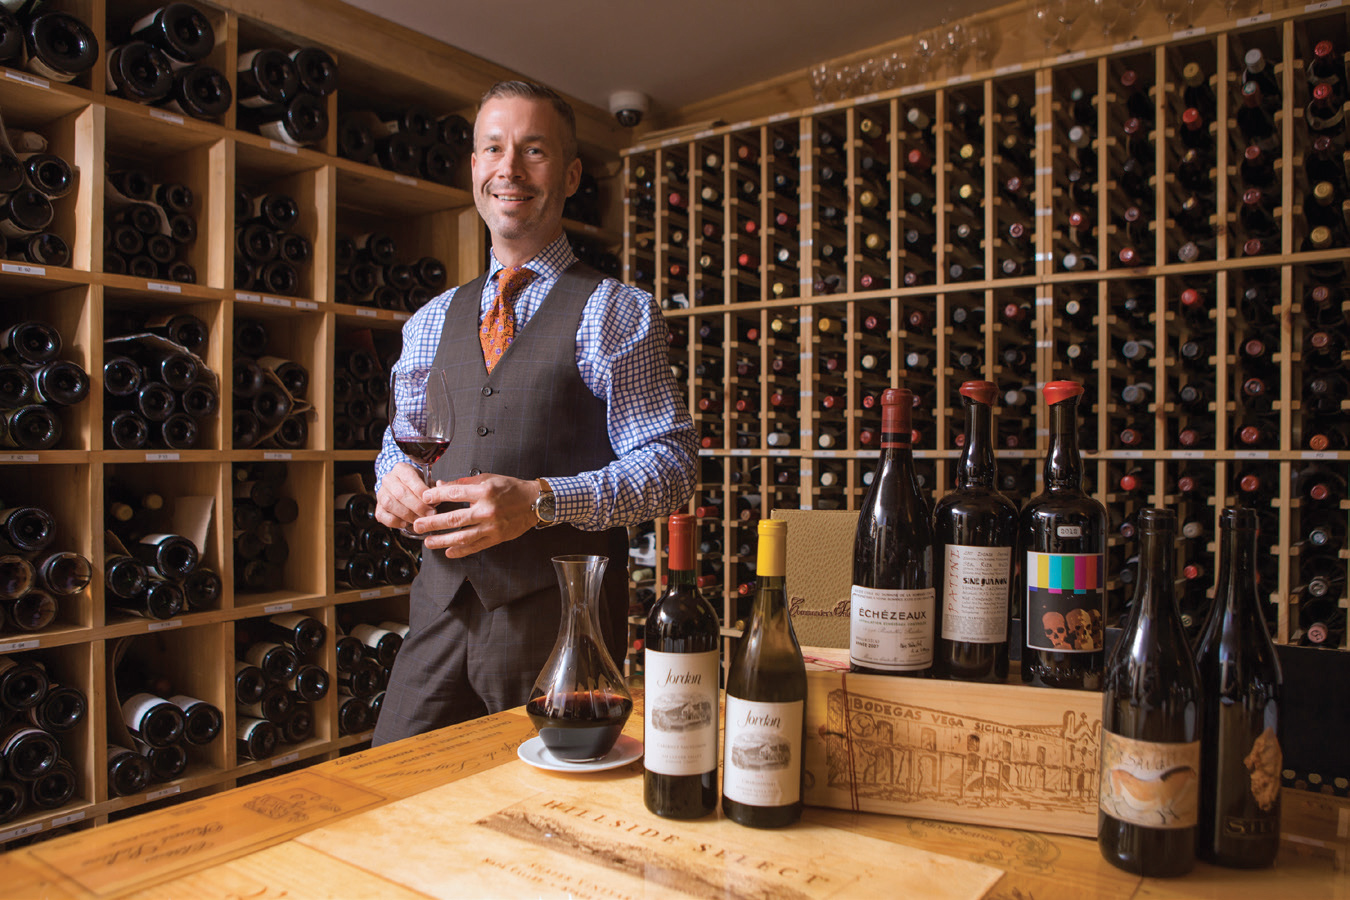 Dan Davis, wine director at Commander's Palace (Credit: Chris Granger)